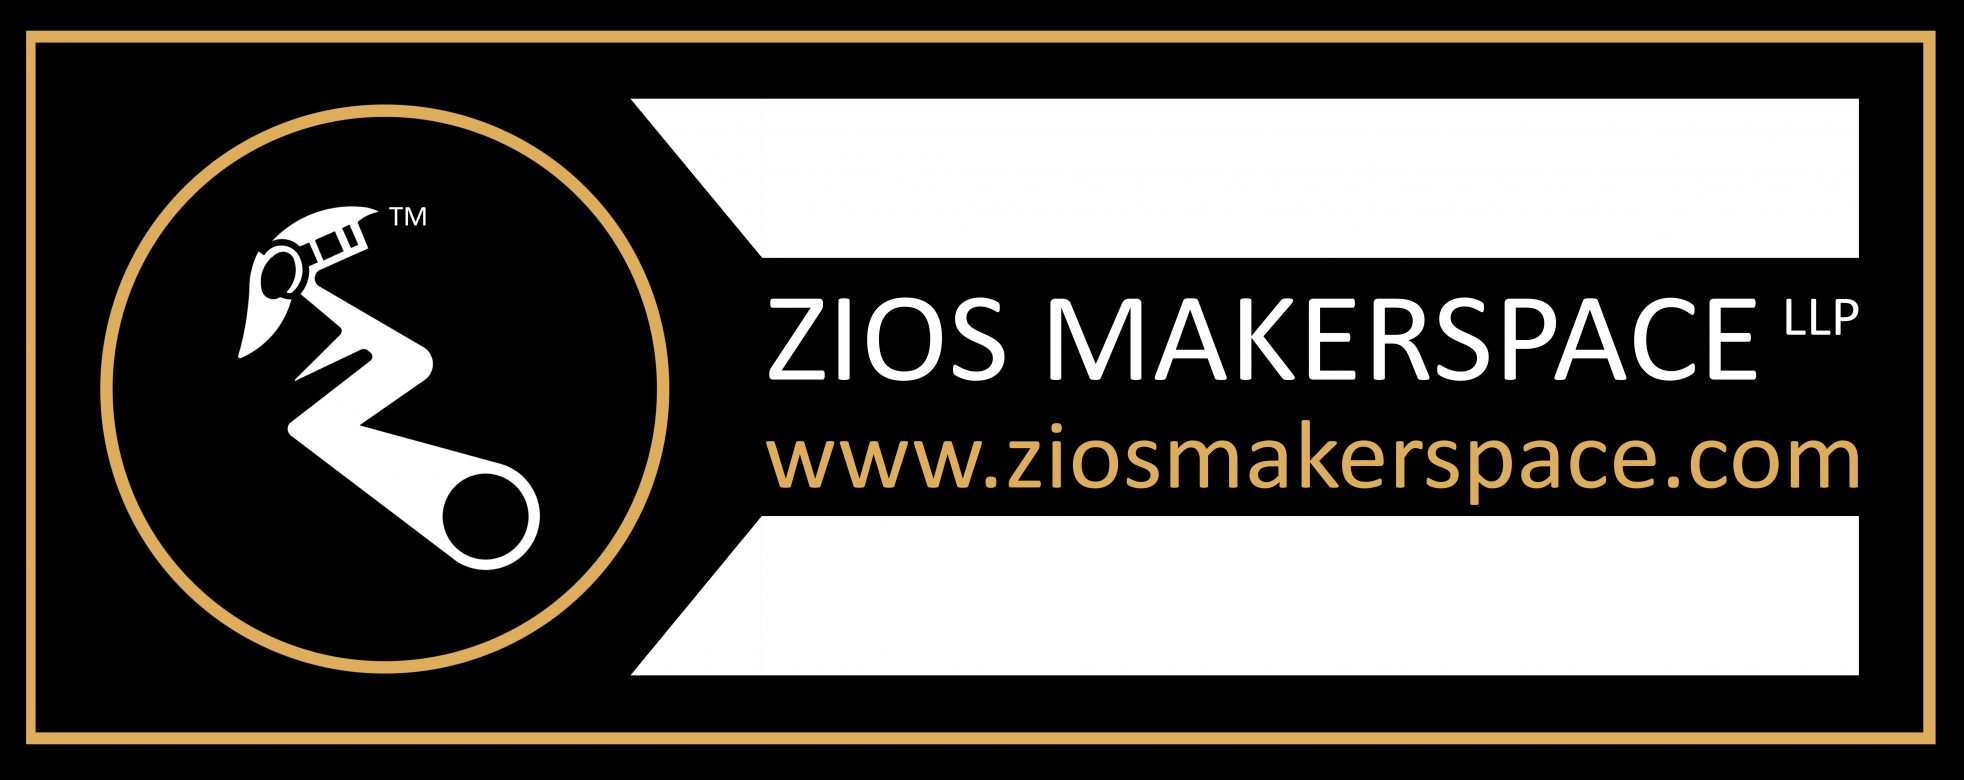 Zios Makerspace LLP Complete Logo